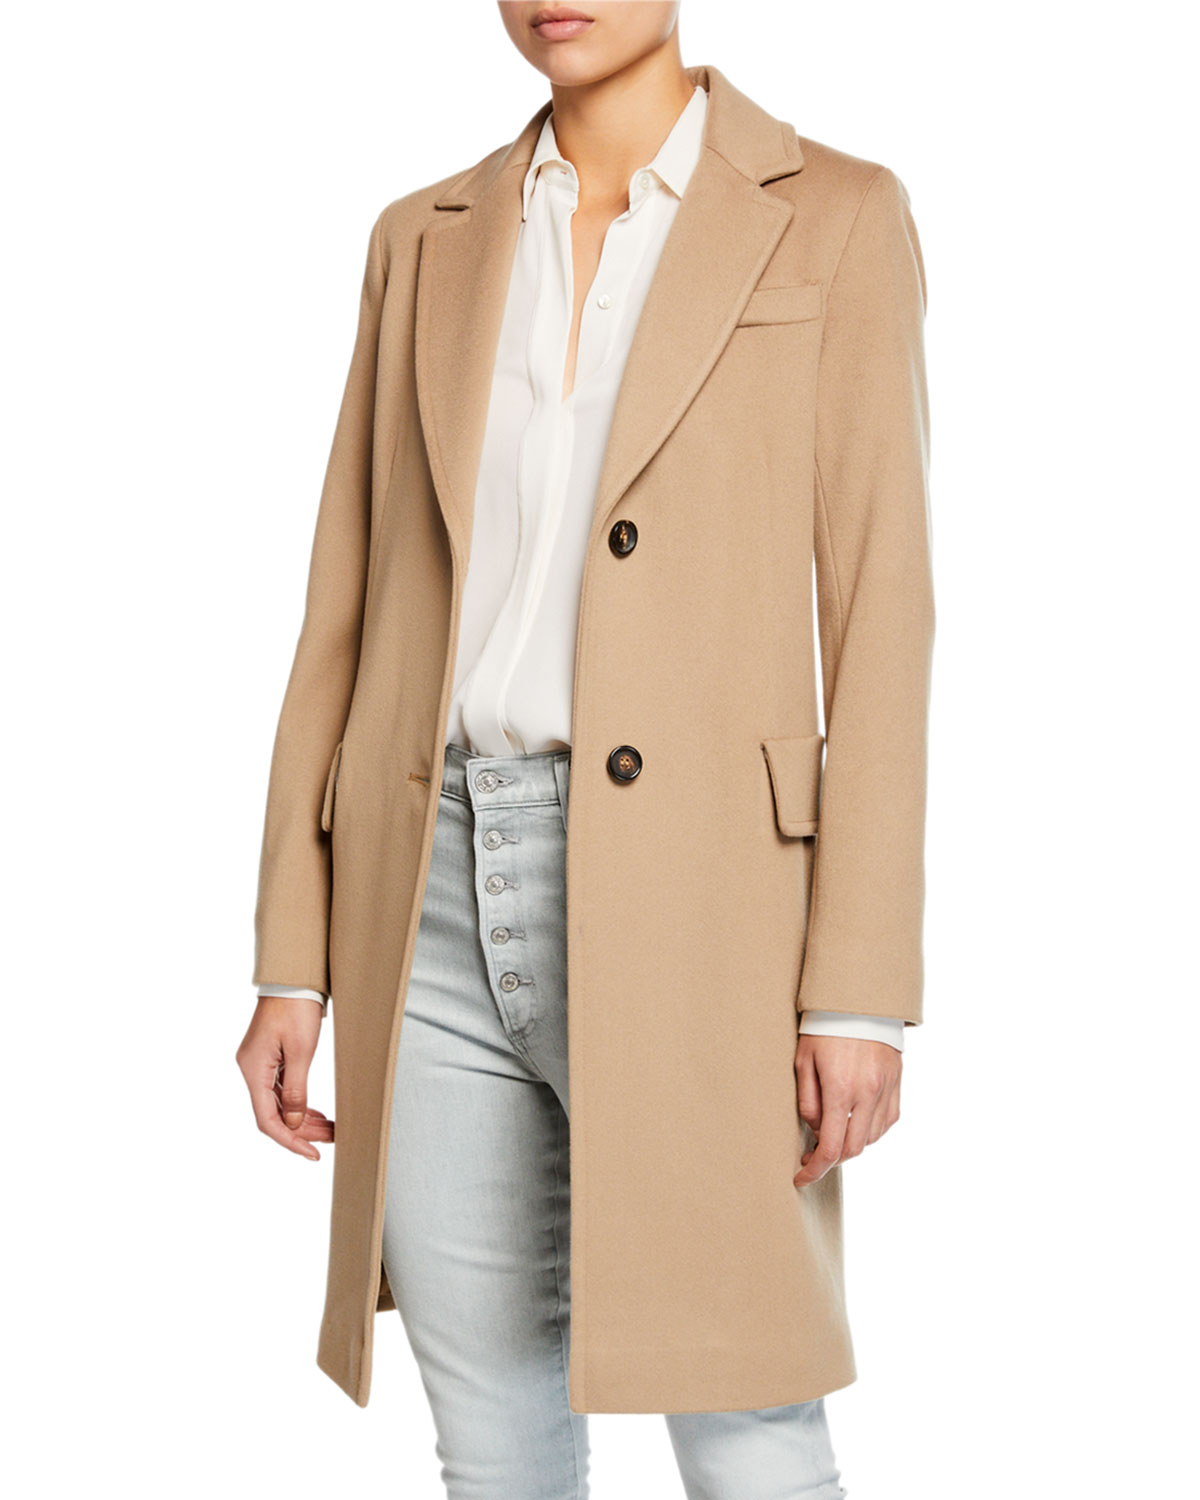 FLEURETTE Wool Two-Button Tailored Coat in Brown